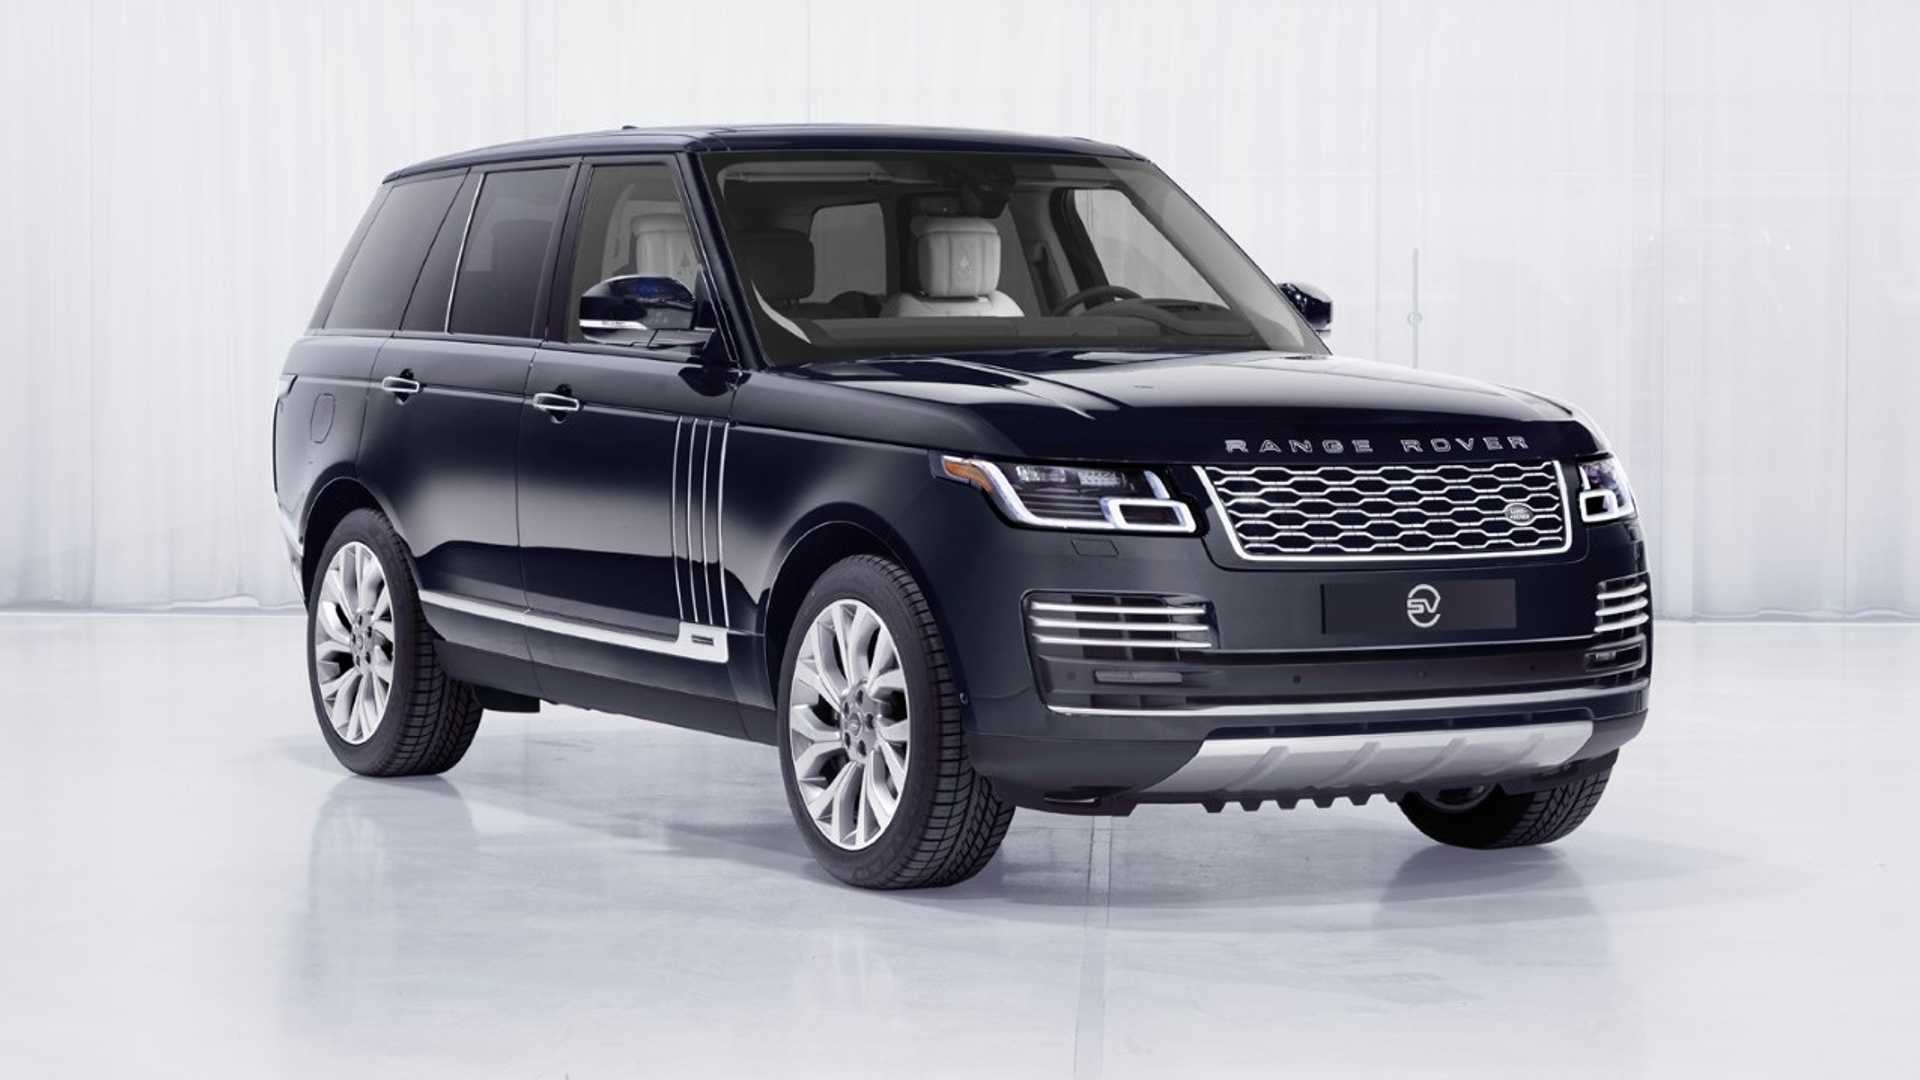 Range Rover Astronaut Edition Is Only For Those Flying Into Space